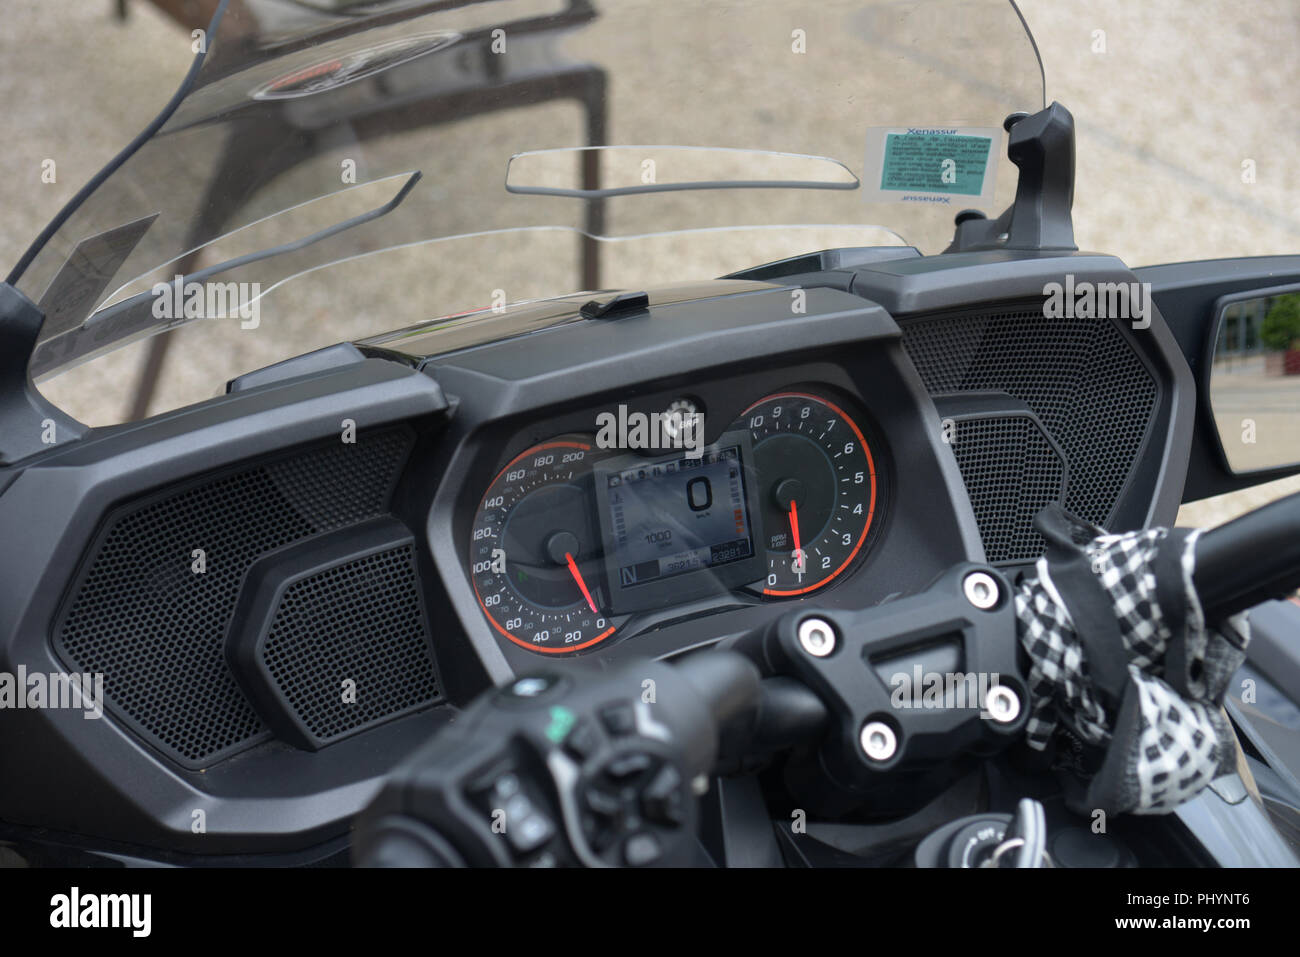 The electronic control panel on a Can-Am's Spyder F3 Limited, a Delta trikes motorcycle with two front wheels and one drive wheel on the back - Stock Image